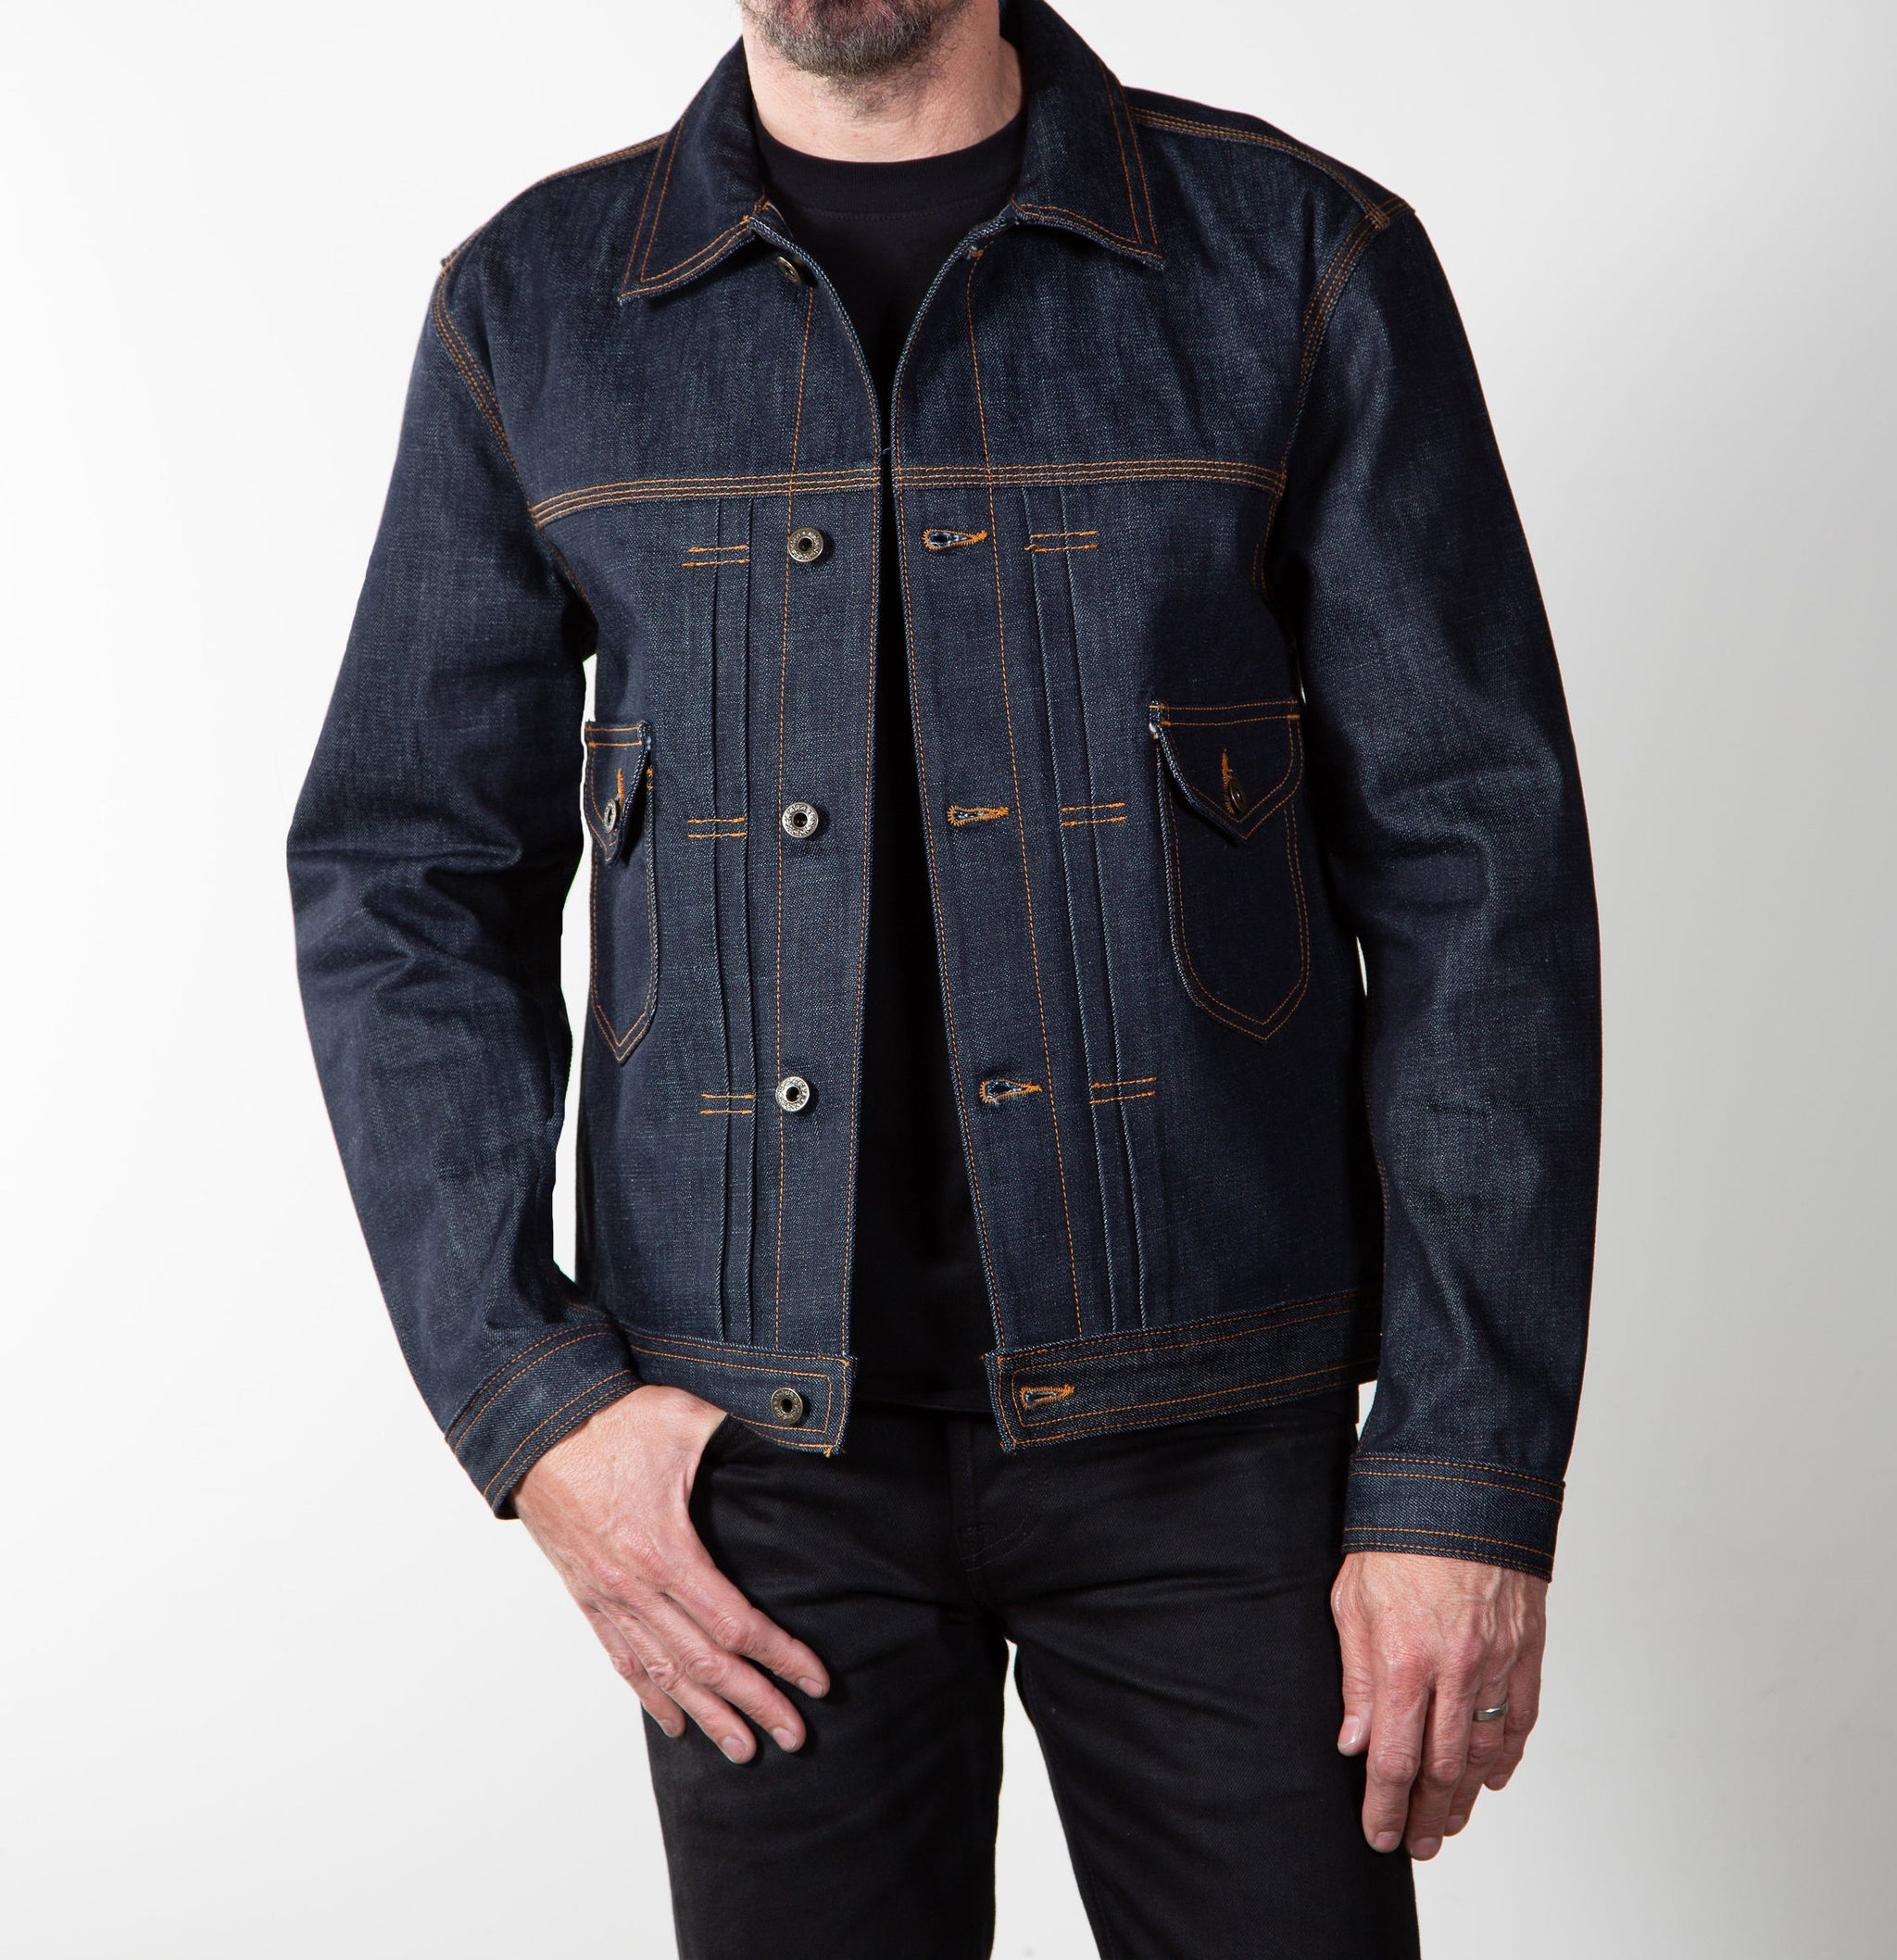 Selvage Denim Jean Jacket Cone Mills - Brave Star Selvage